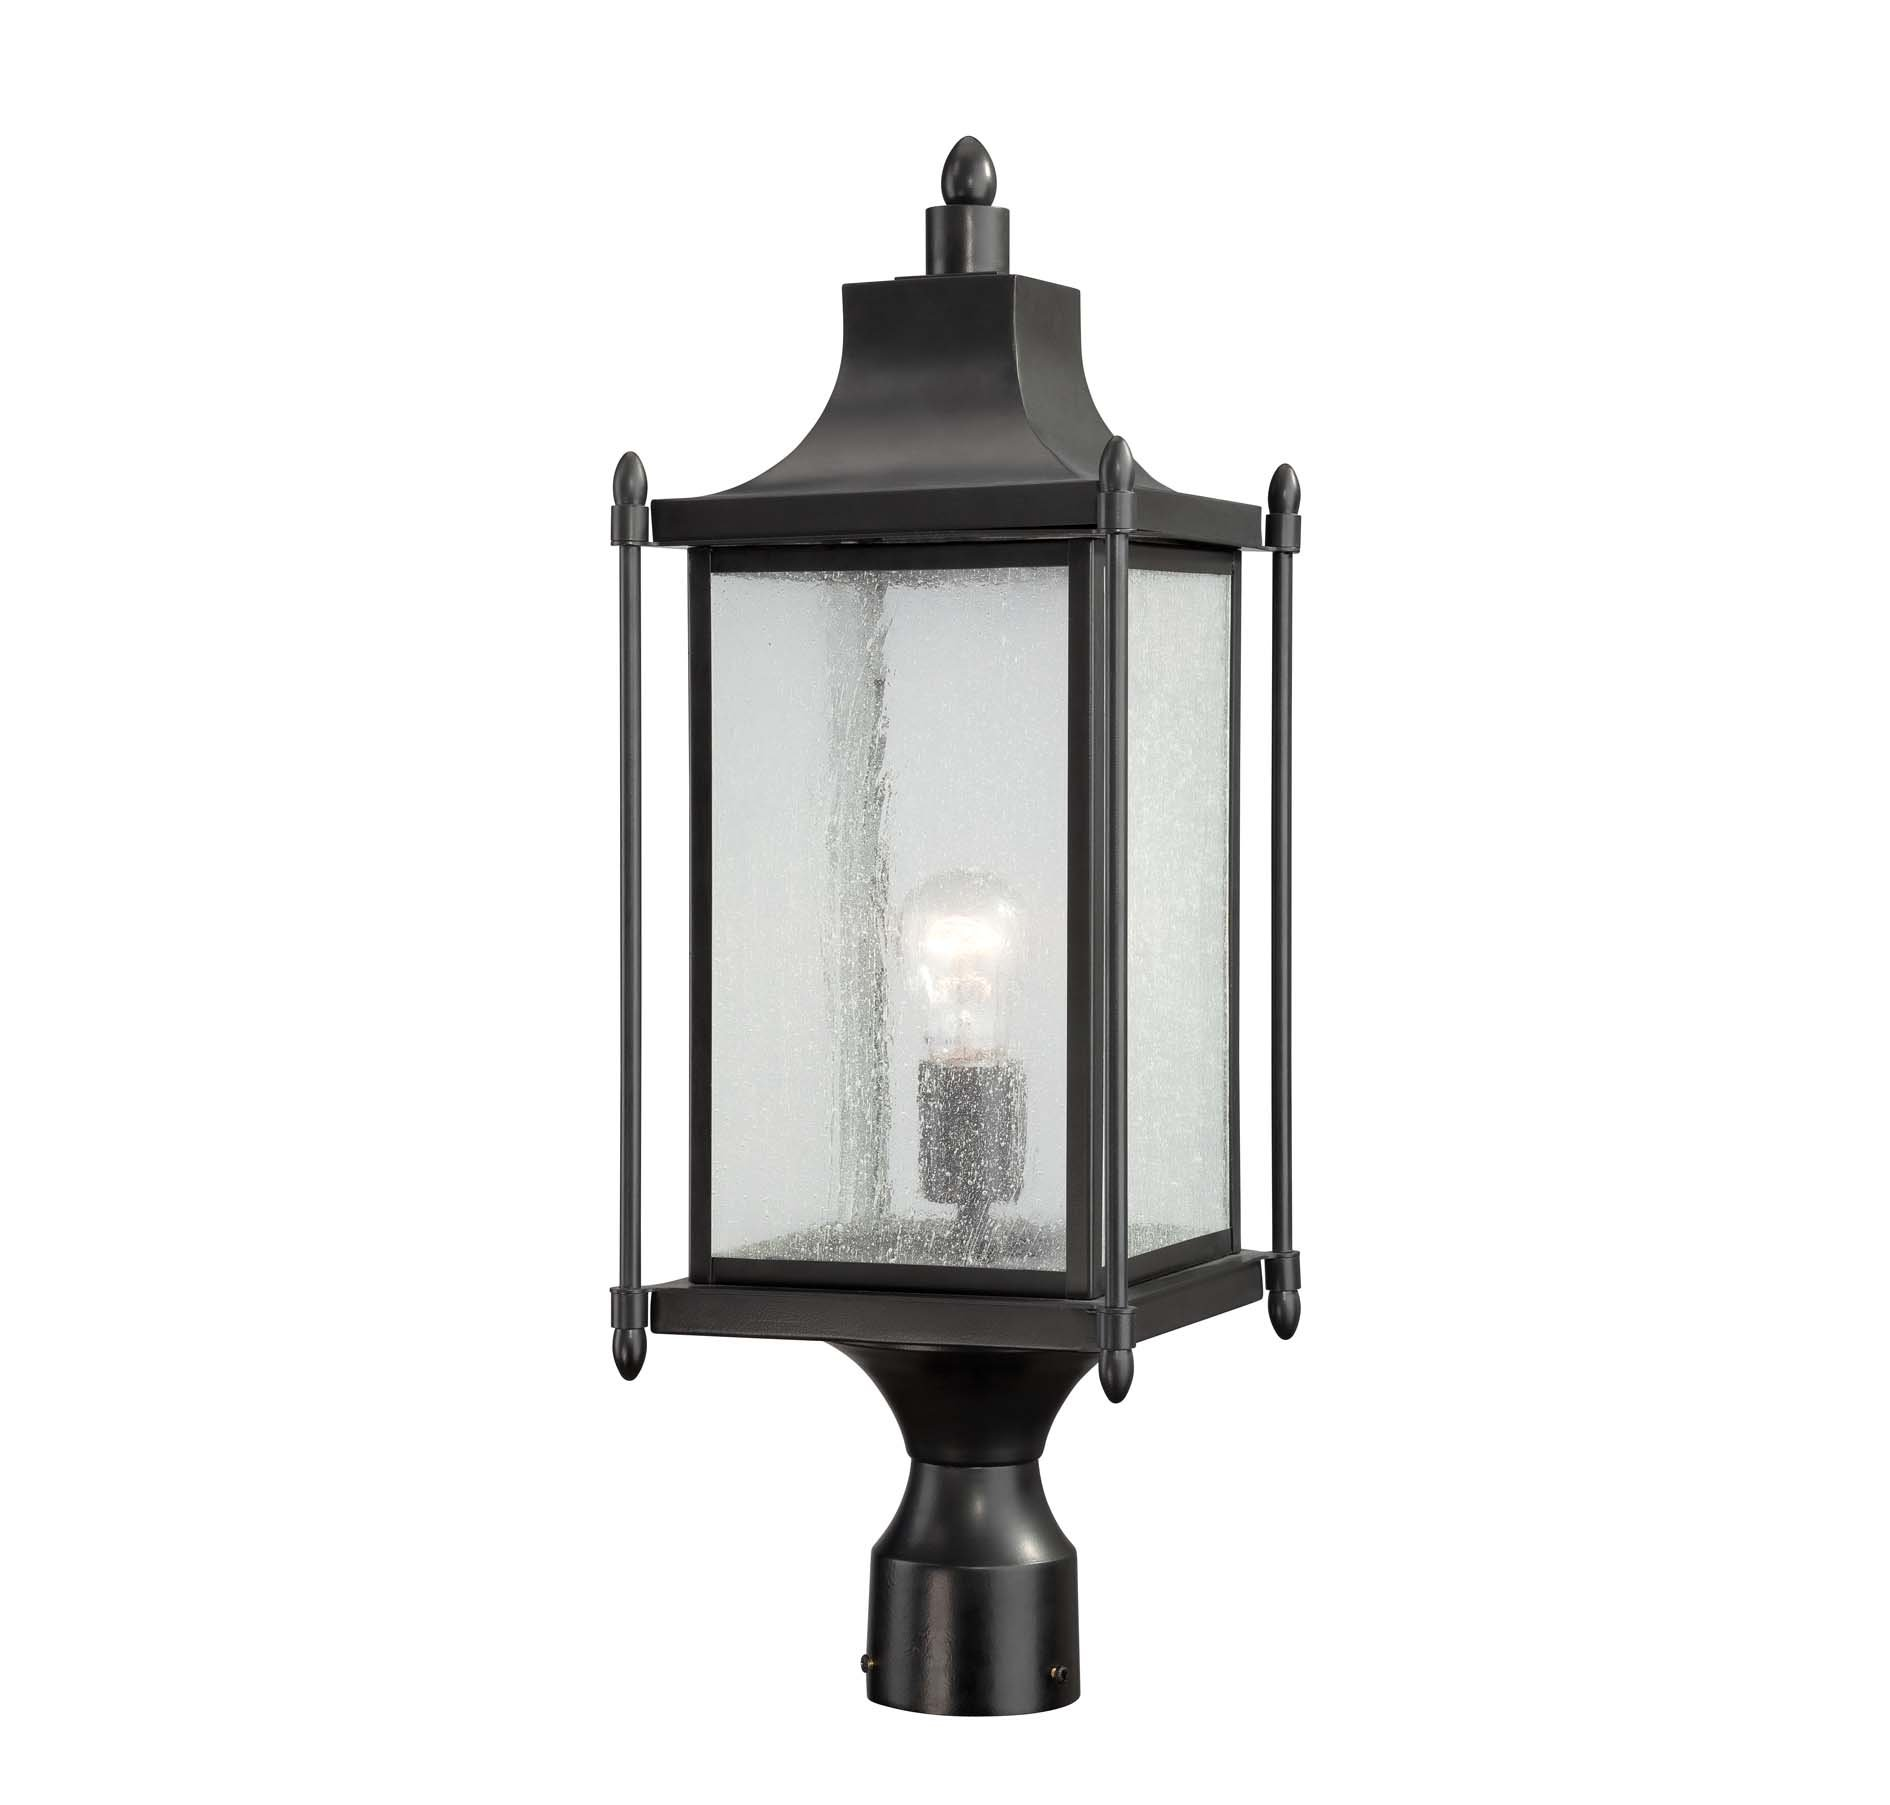 Dunnmore exterior post light by savoy house 5 3454 bk dunnmore exterior post light by savoy house aloadofball Images